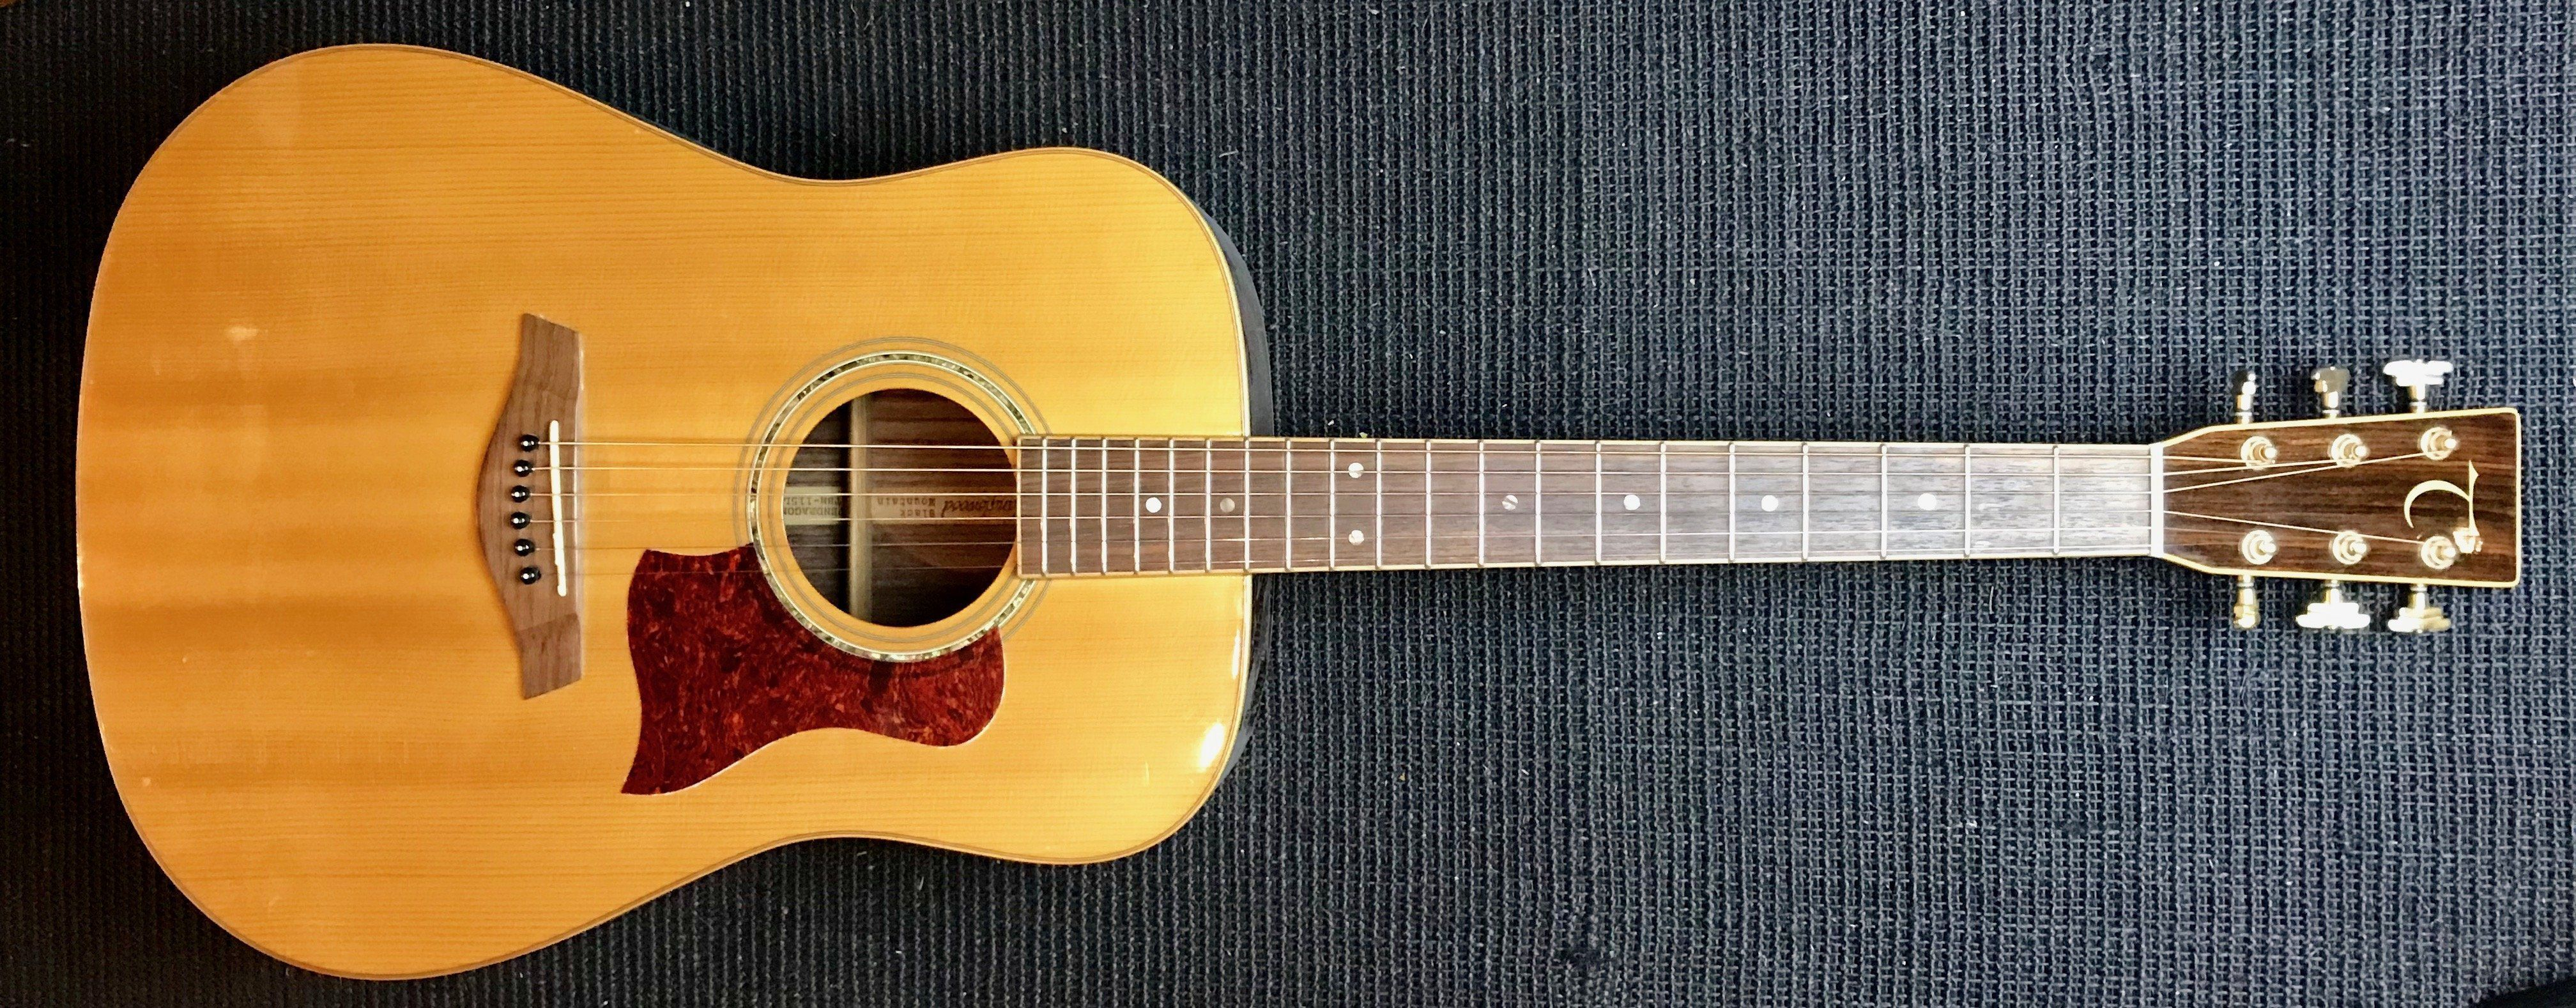 Tanglewood Black Mountain Acoustic Guitar Used Plus Over 100 Added Value Inc Pro Setup Certificate More In 2020 Guitar Black Mountain Acoustic Guitar